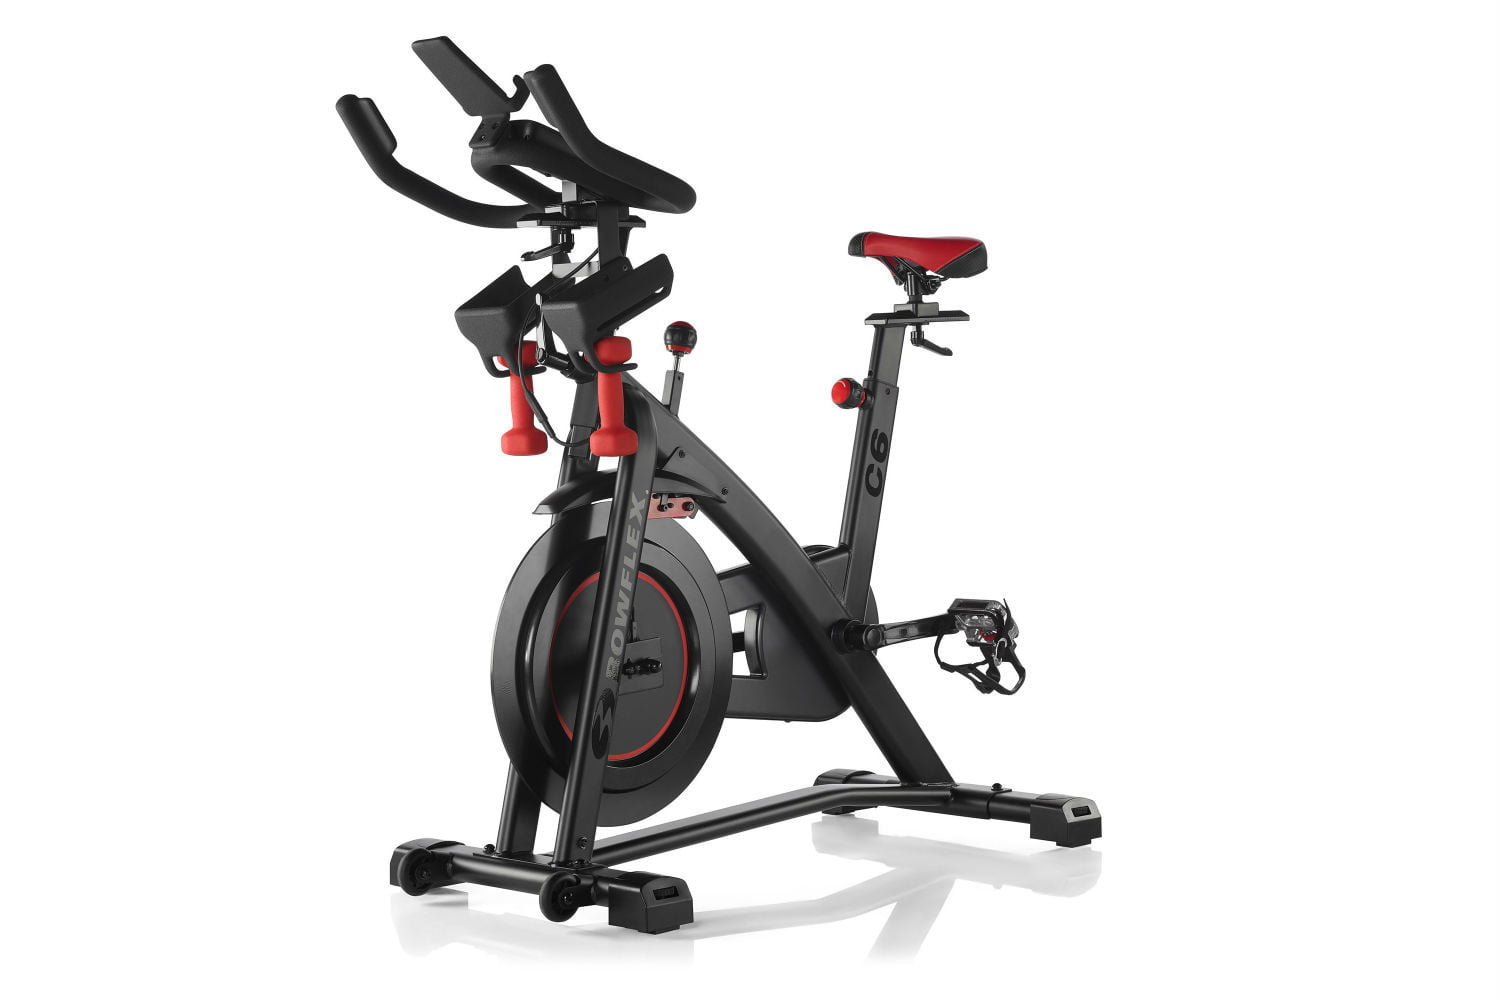 bowflex cyber week deals c6 bike 2 redimensionné